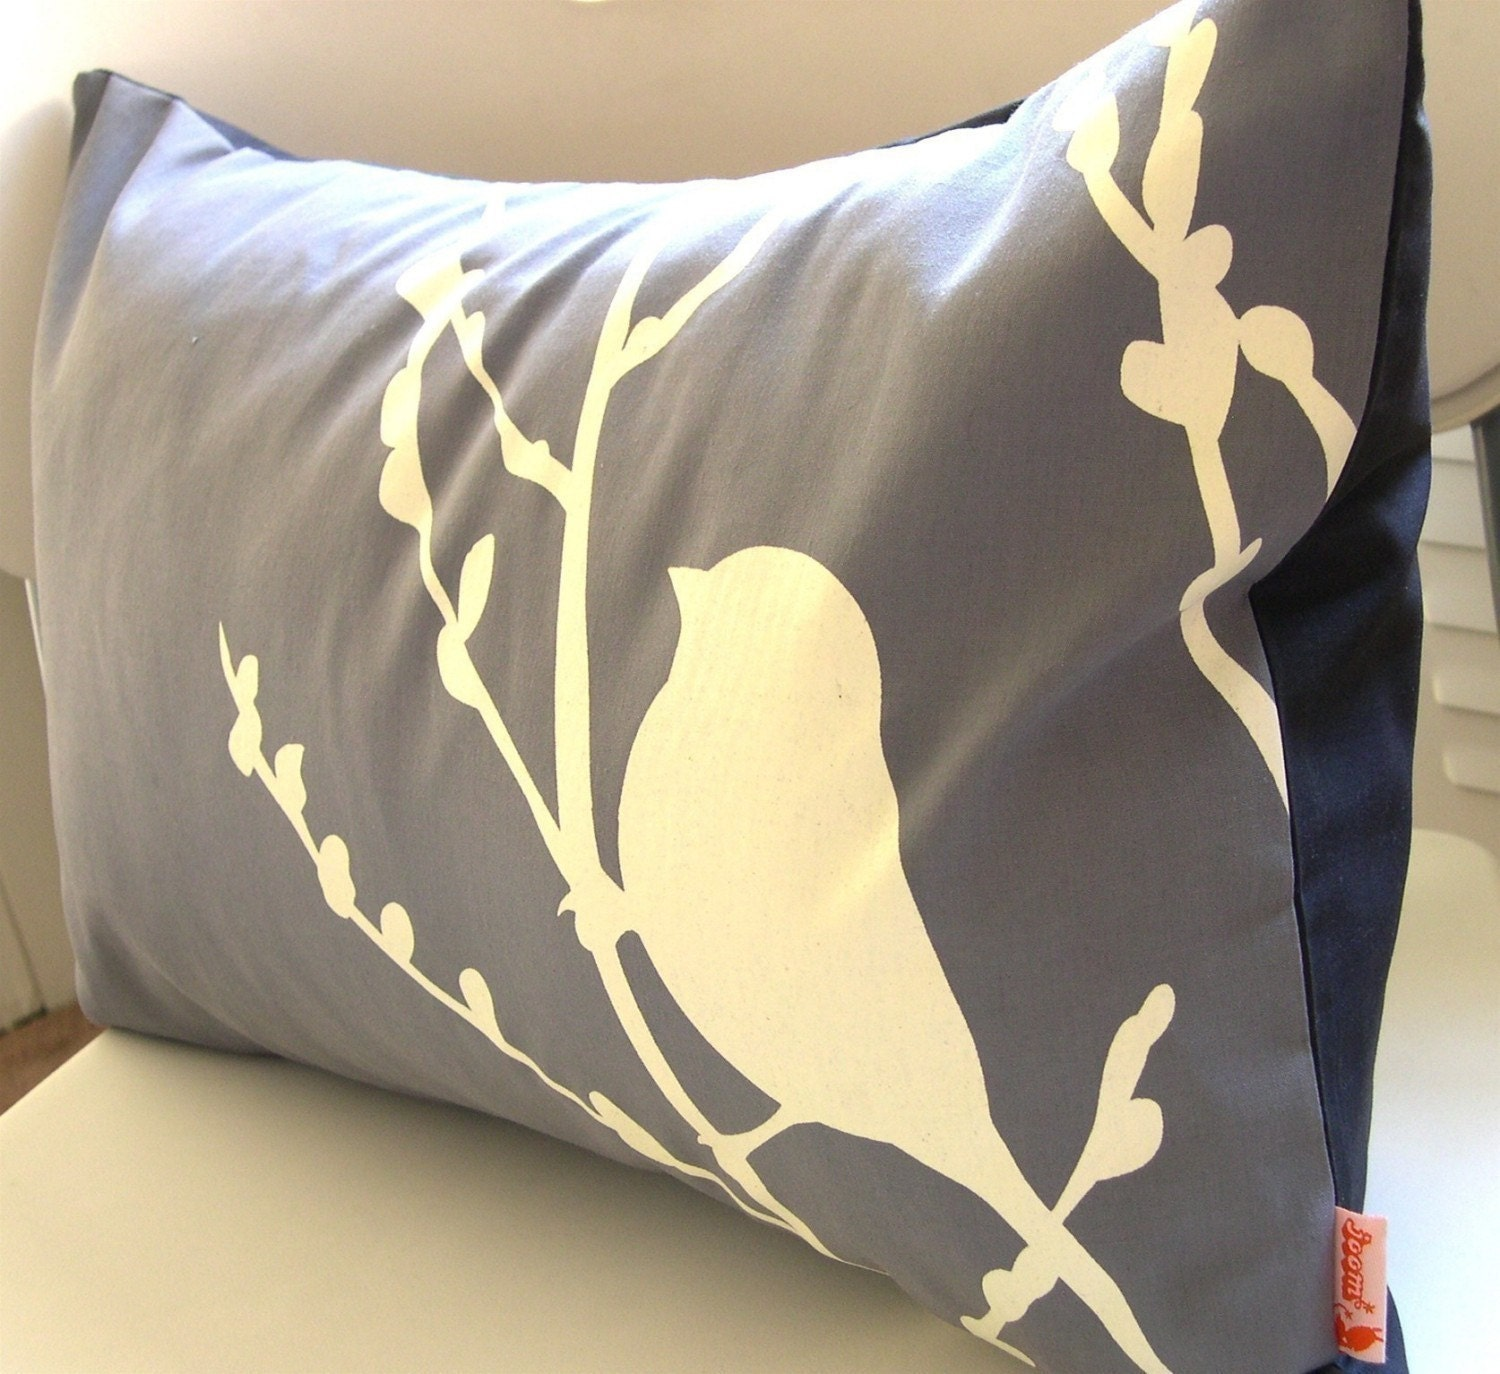 Slate Bird on Cherry Blossom Pillow